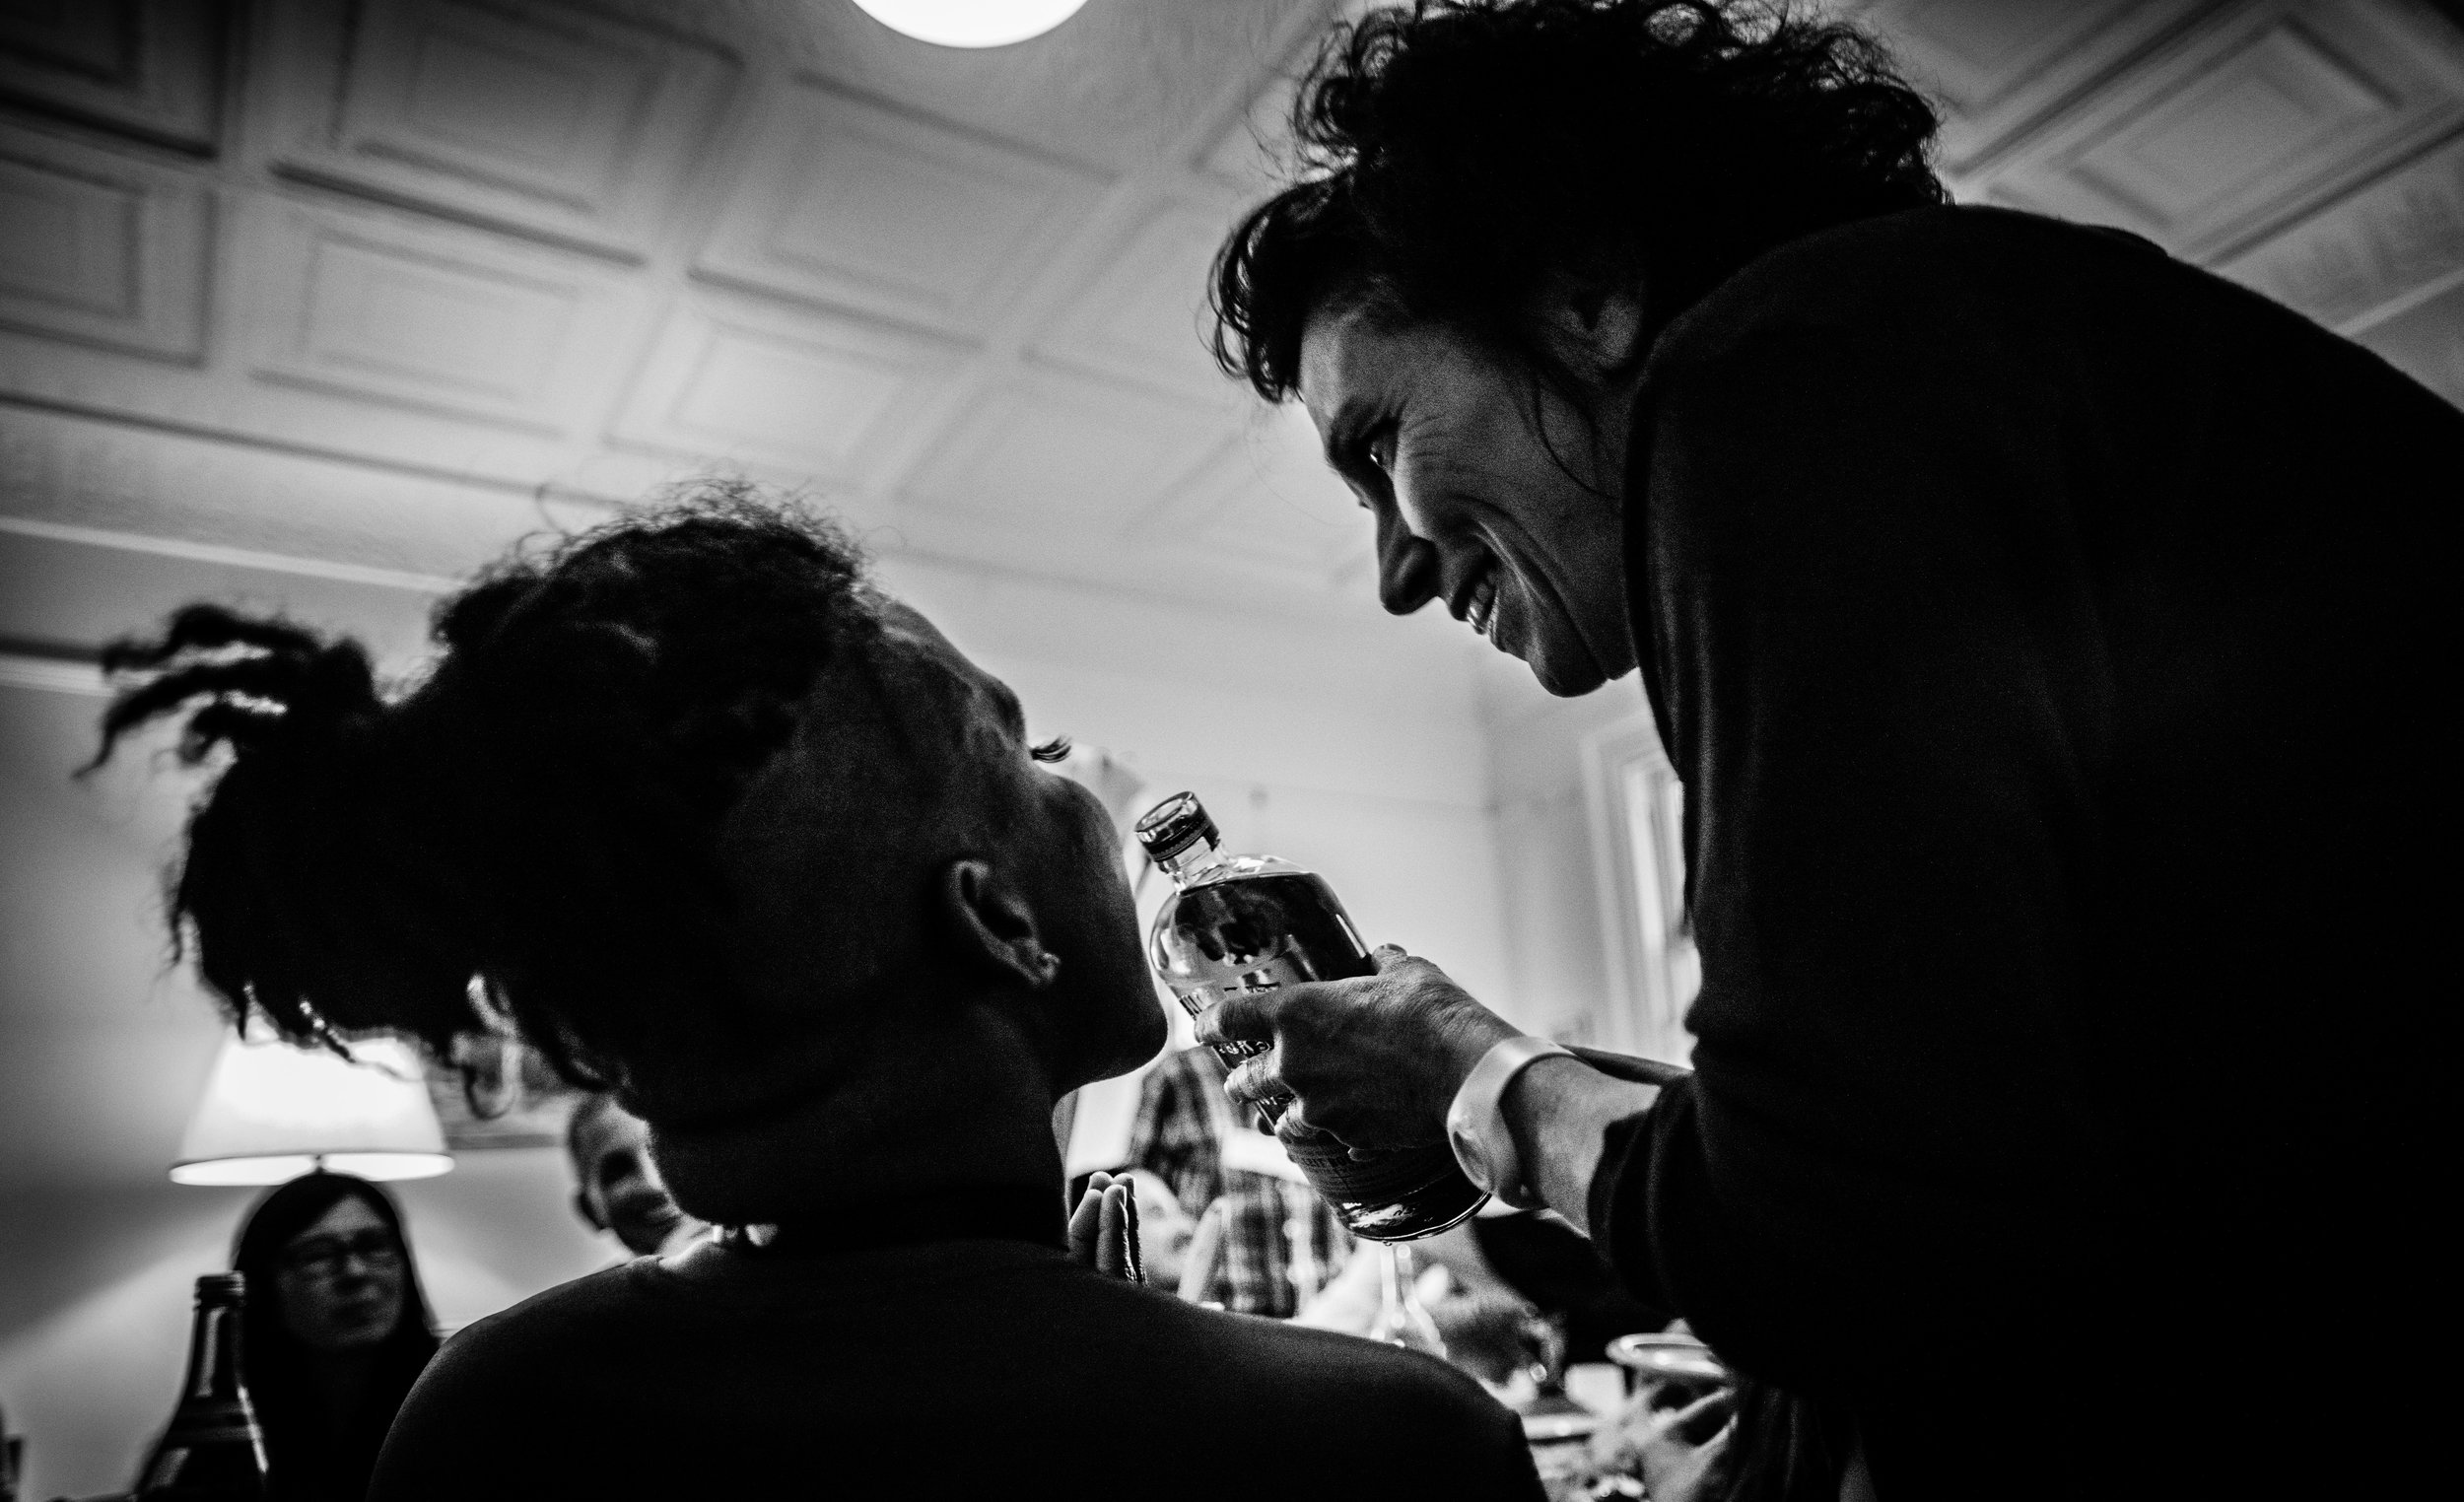 Carolyn offers Jose some whiskey during the 'Dinner Gallery' of For You. Photo by: Robbie Sweeny.